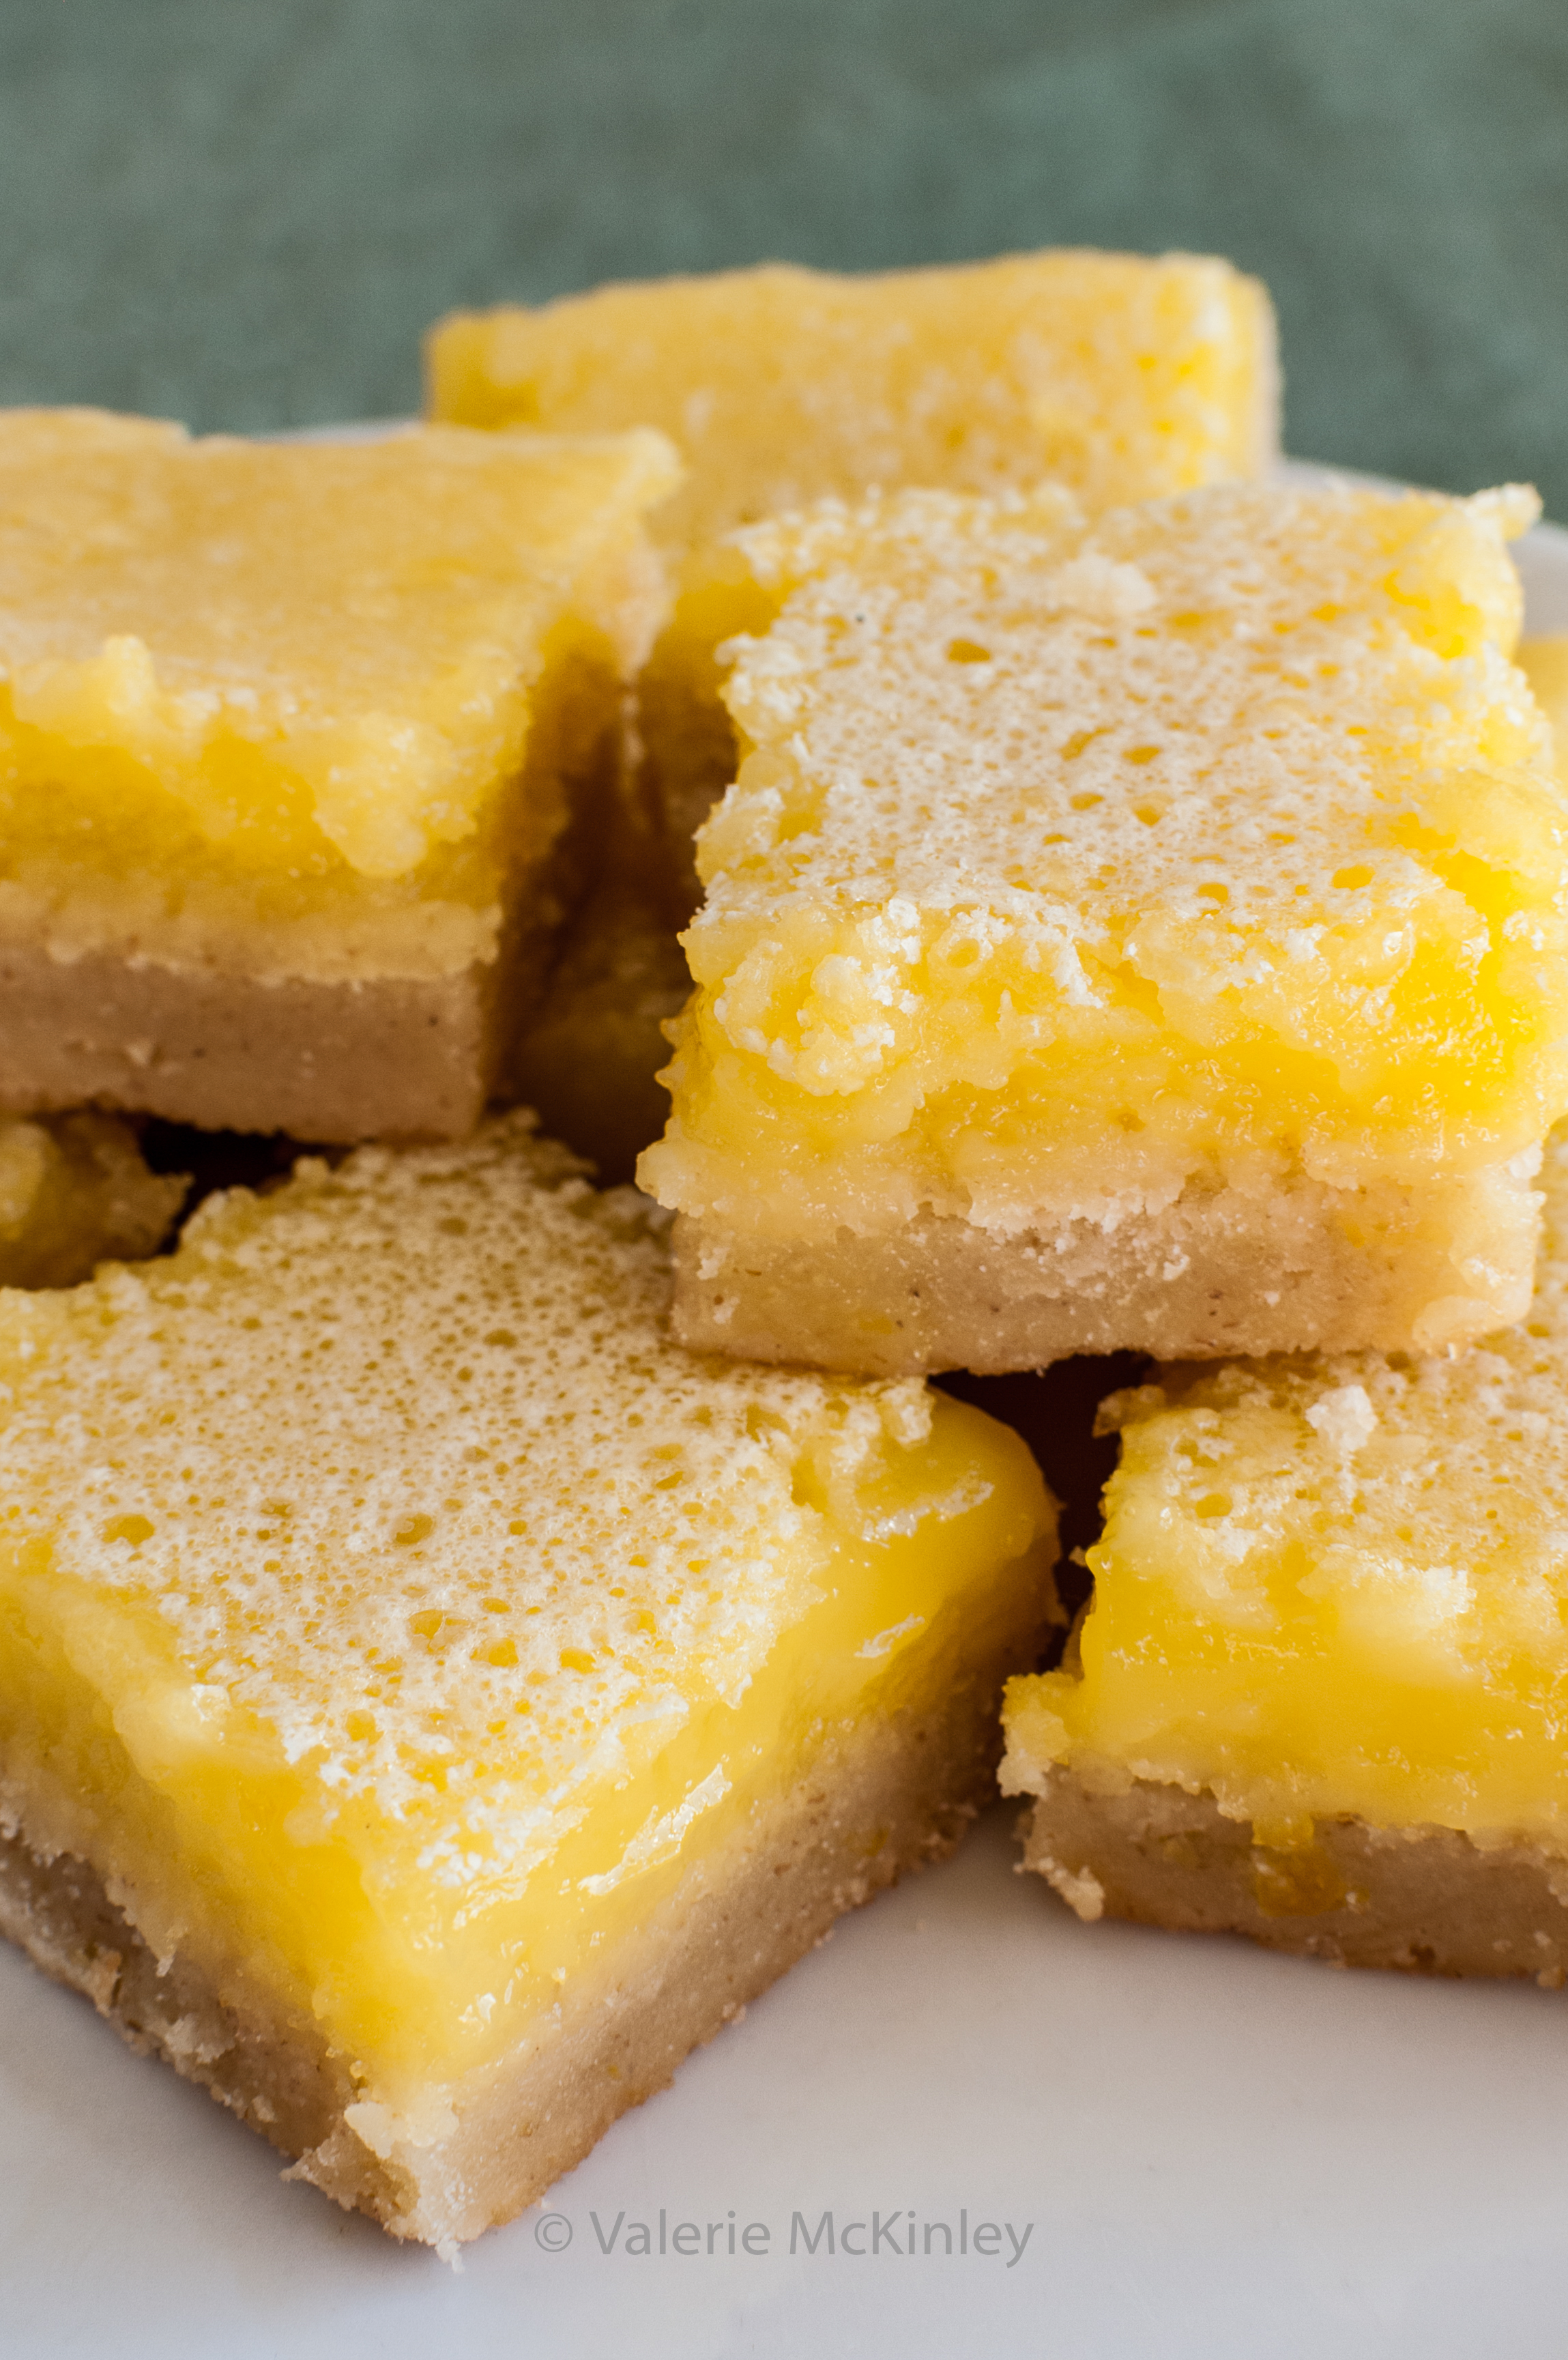 """Glorious Lemon Bars - the recipe is in """"EveryDayMaryJ, A Practical Guide to Cooking With Cannabis"""" by Mary J. White. Photo copyright Valerie McKinley, all rights reserved."""